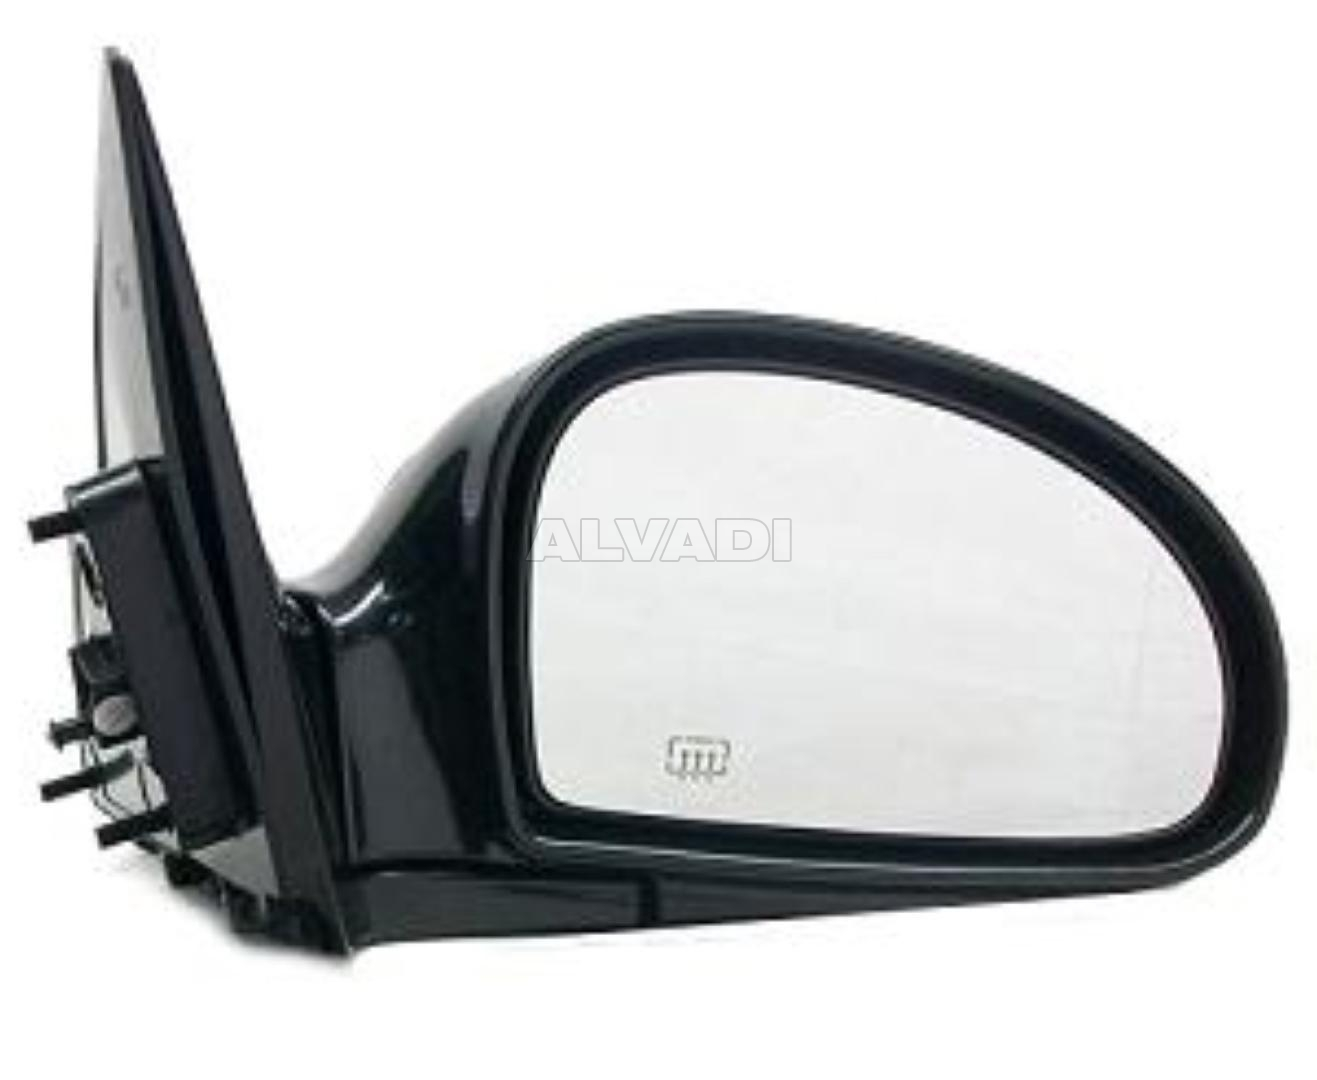 Wiring Colors For Kia Spectra Drivers Mirror from pics3.alpics.info